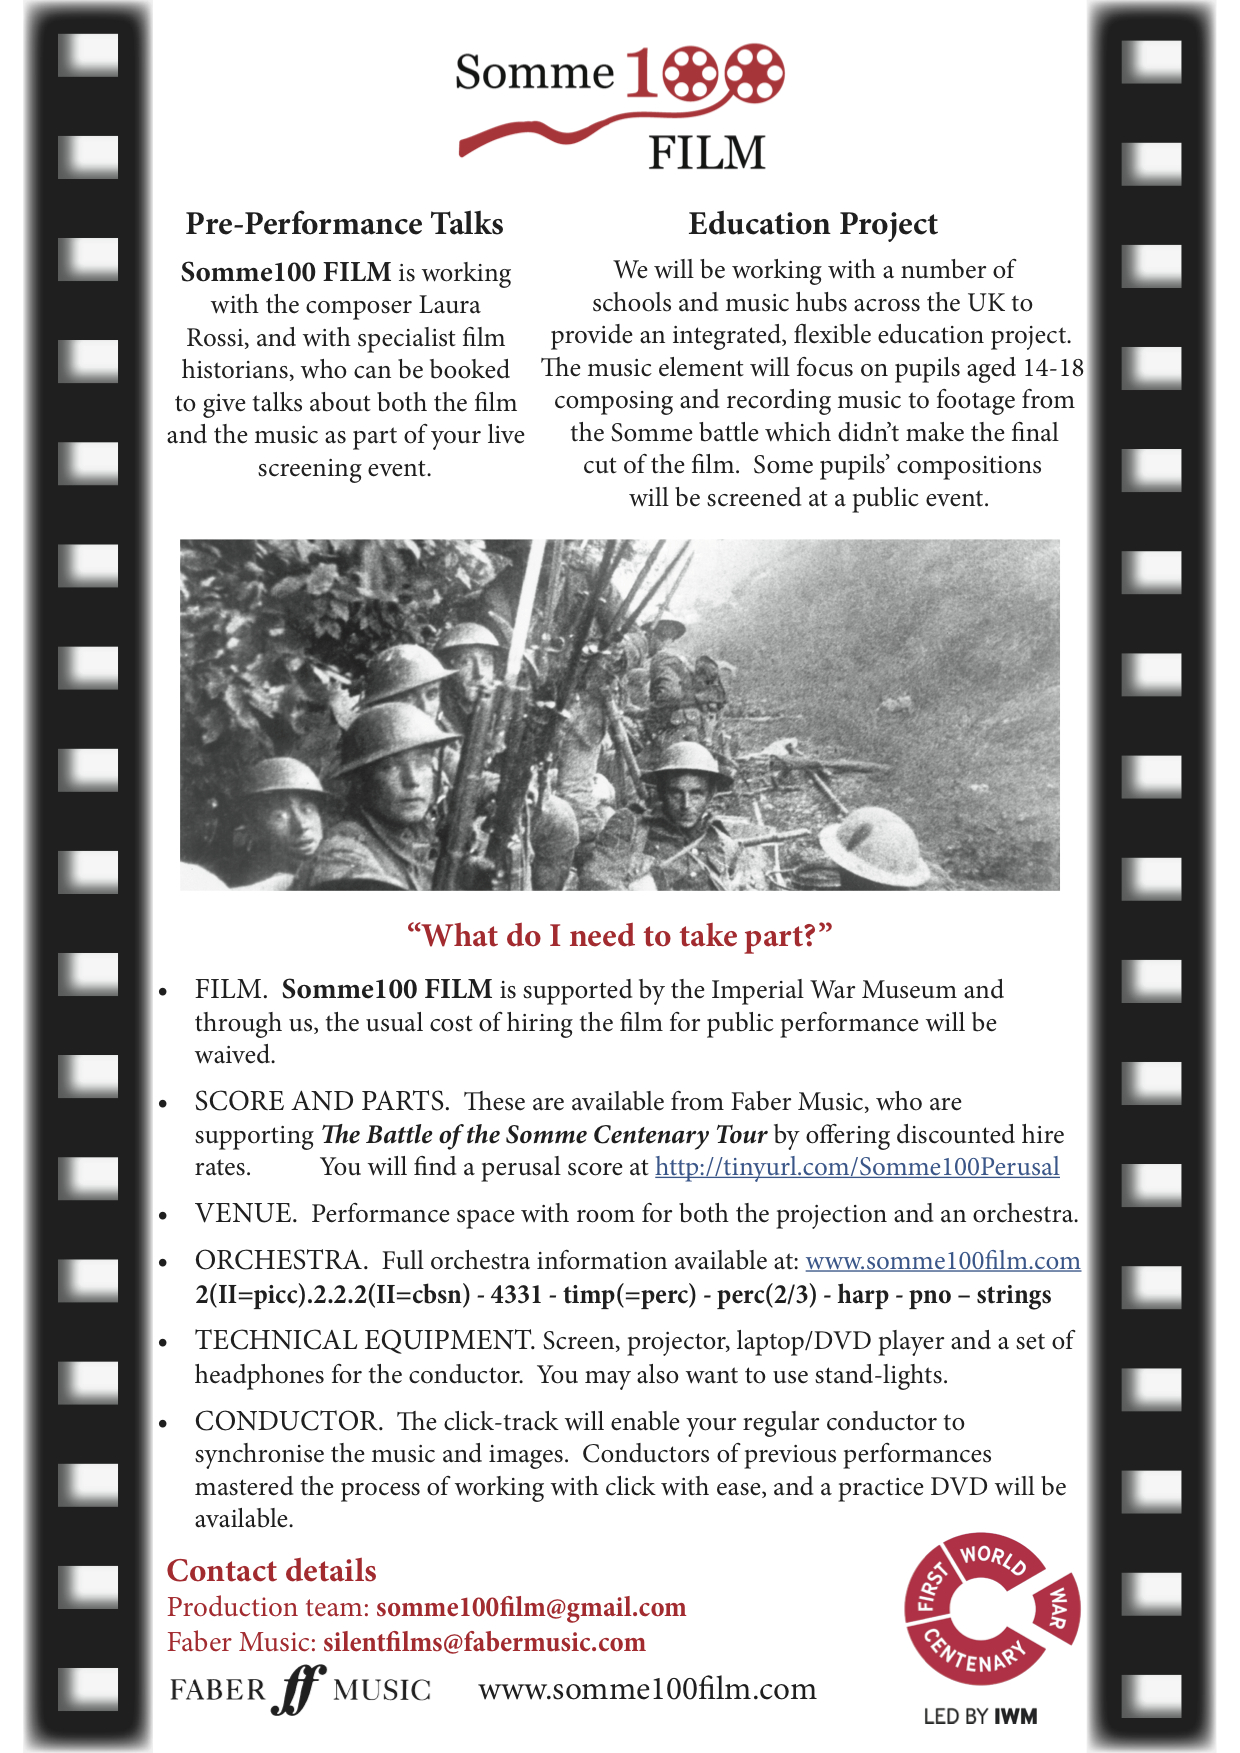 1 Somme100 FILM general information flyer p2